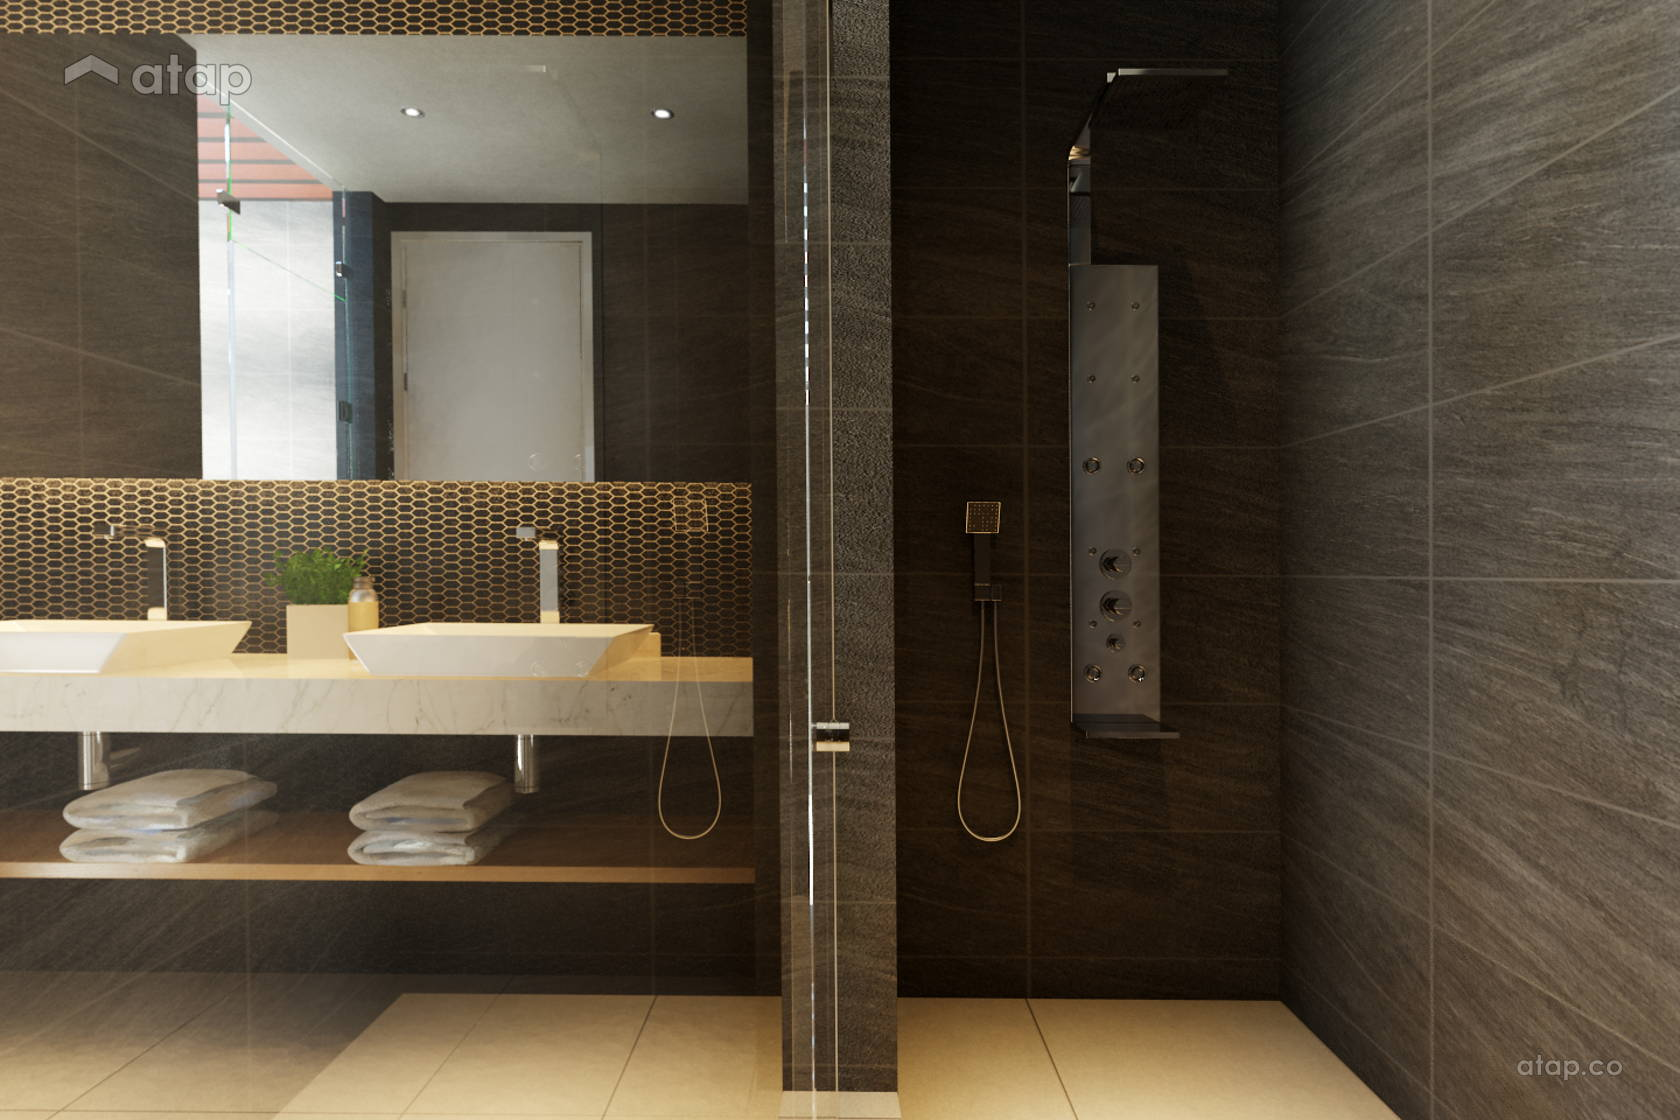 20 Malaysian Bathroom Design Ideas For Your Renovation Atap Co